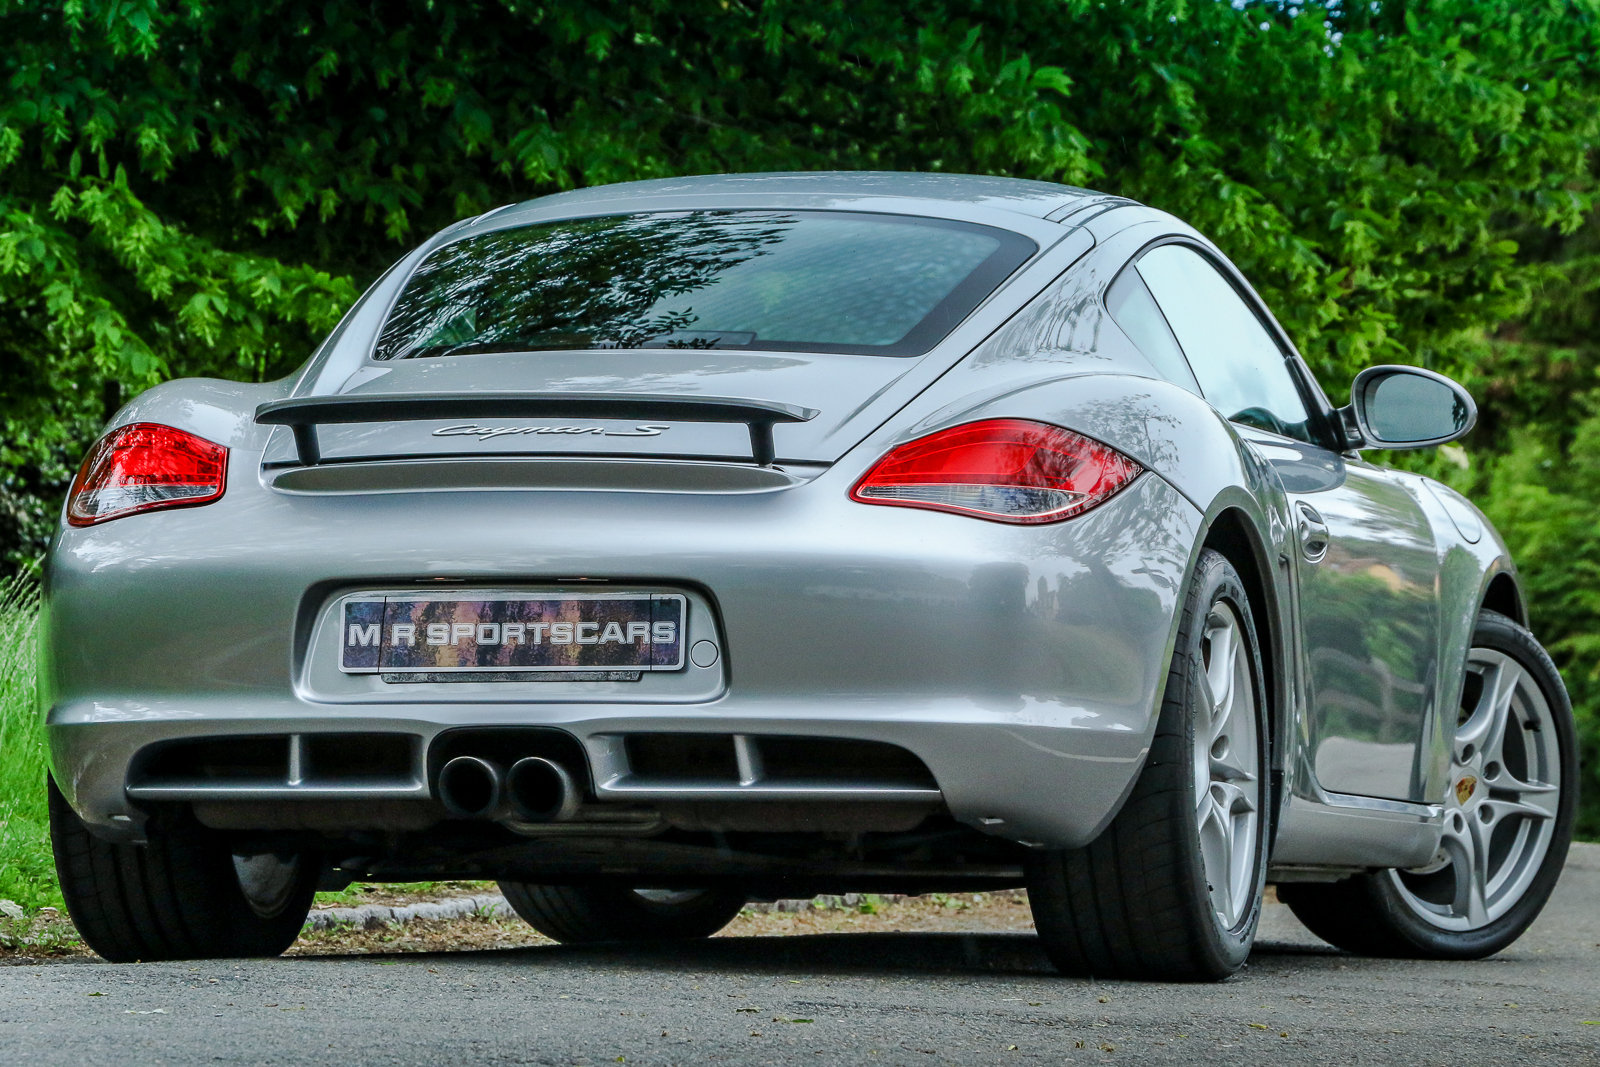 2009 Porsche Cayman S 987.2 Gen 2 GT Silver Metallic PASM For Sale (picture 2 of 6)